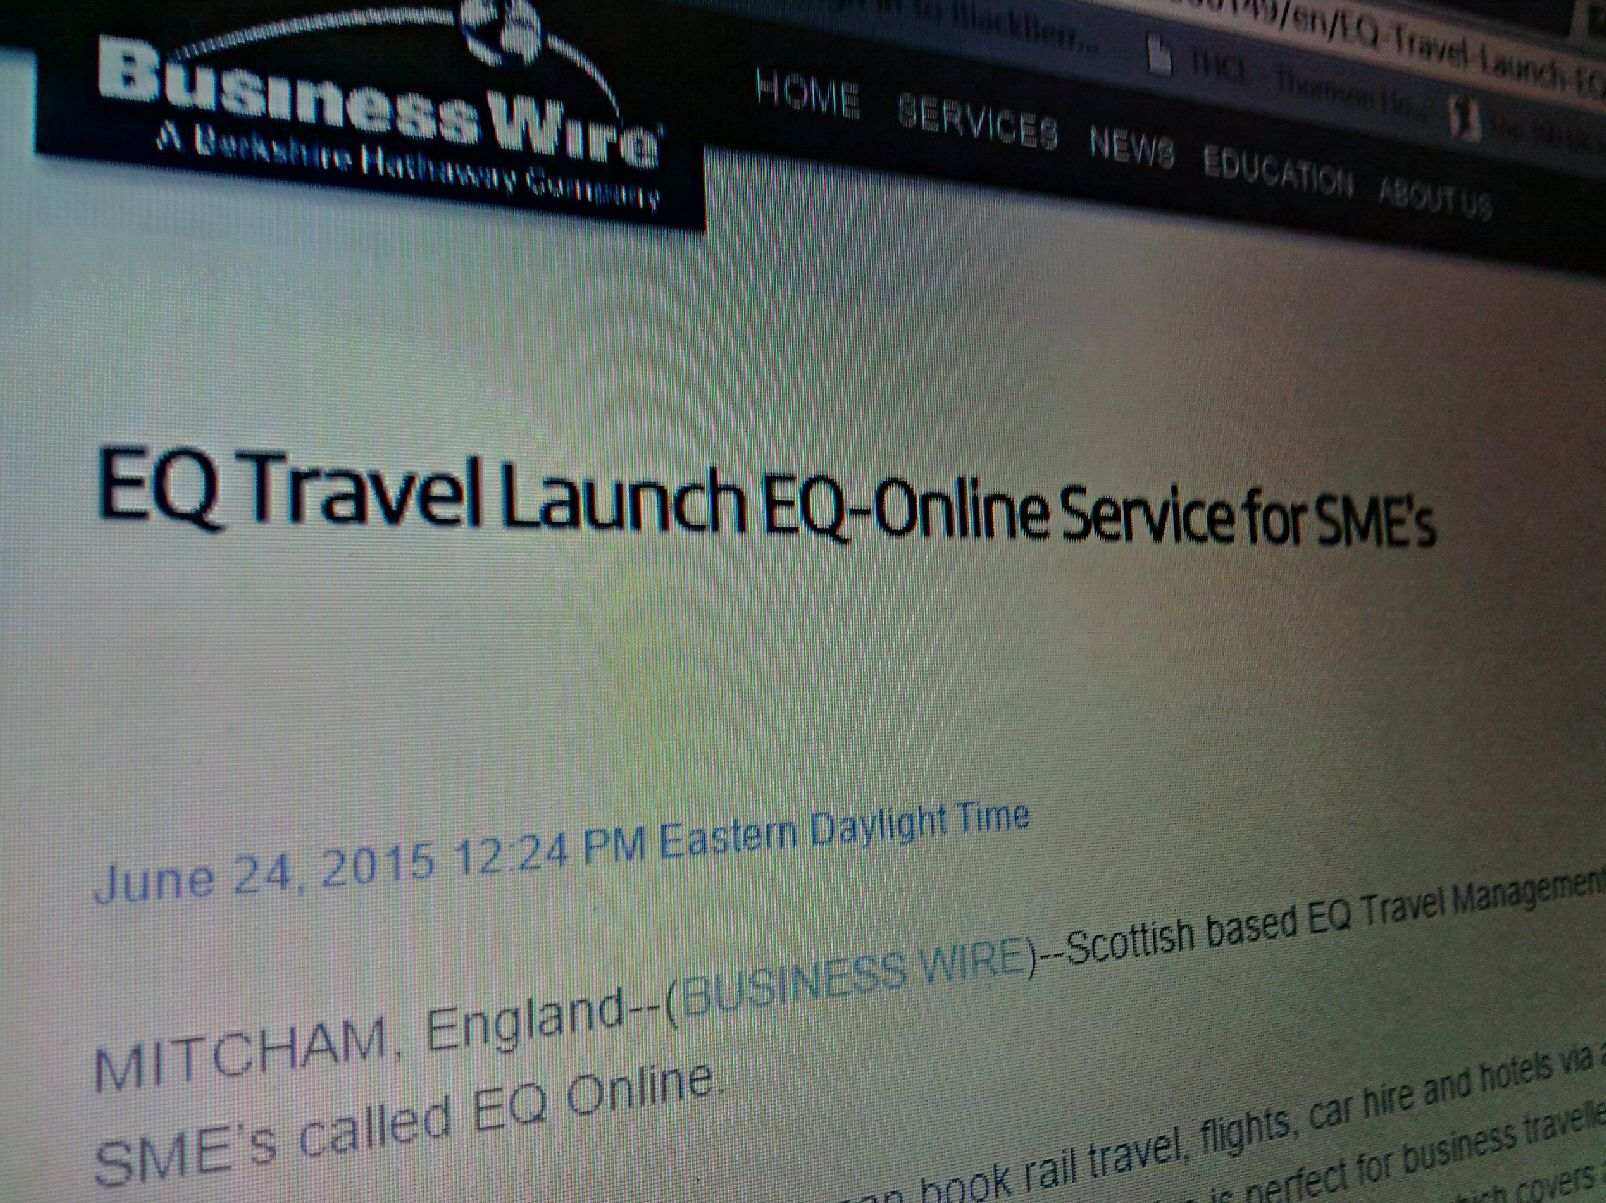 EQ online in business wire news